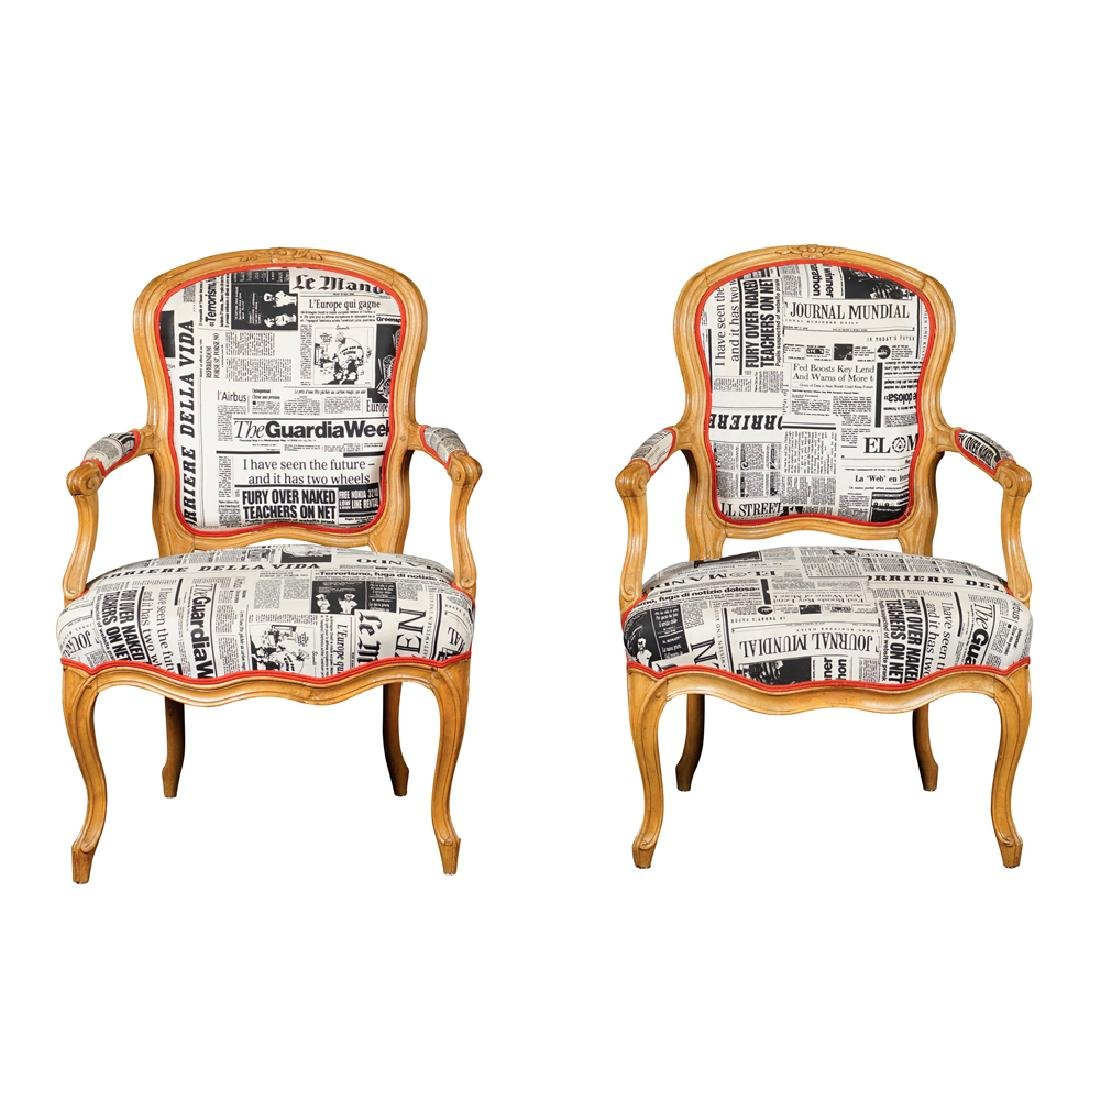 Pair of armchairs France early 20th century 86x60x46 cm